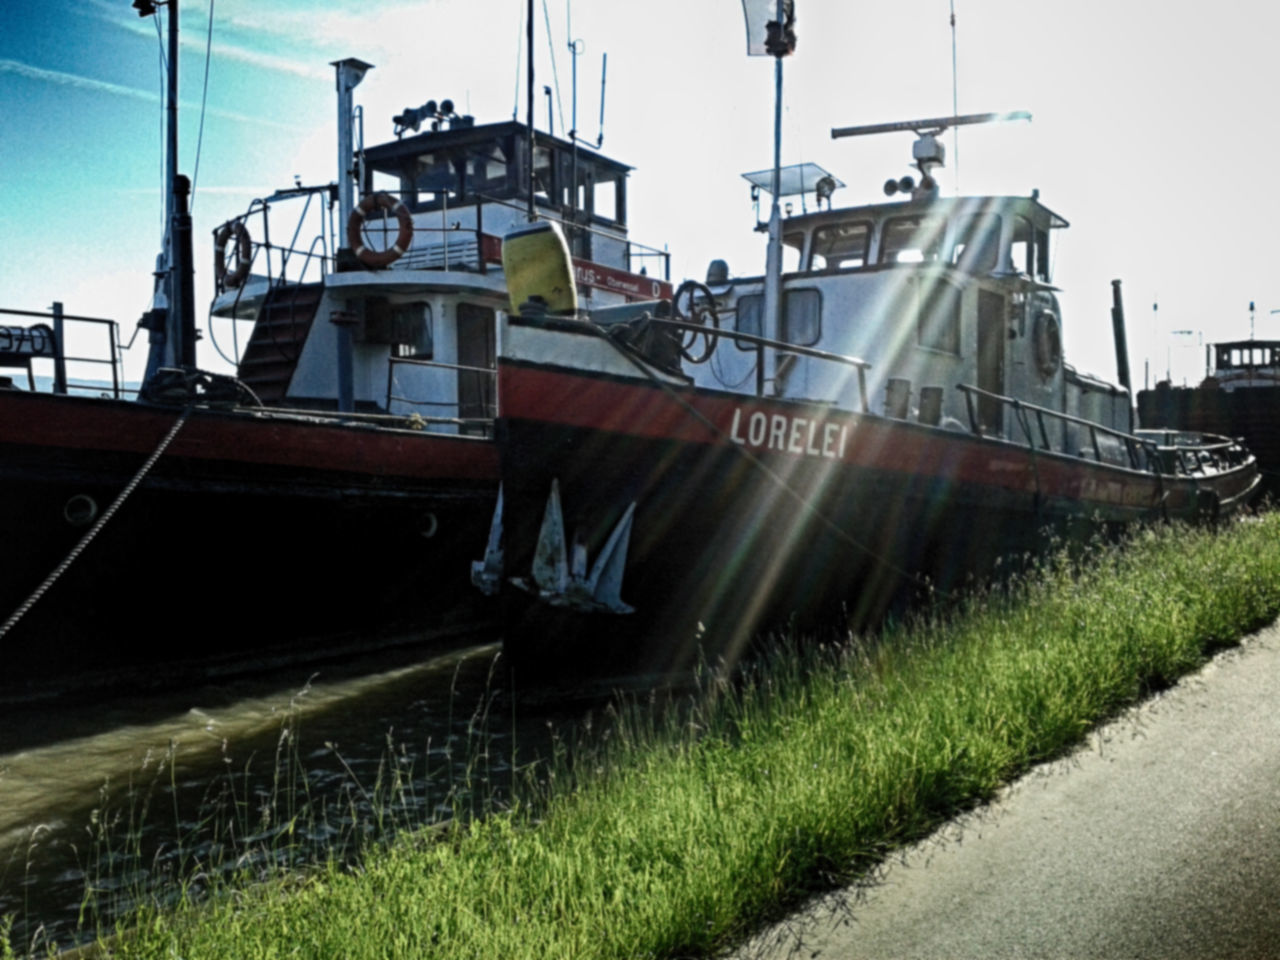 nautical vessel, transportation, outdoors, moored, day, no people, grass, sky